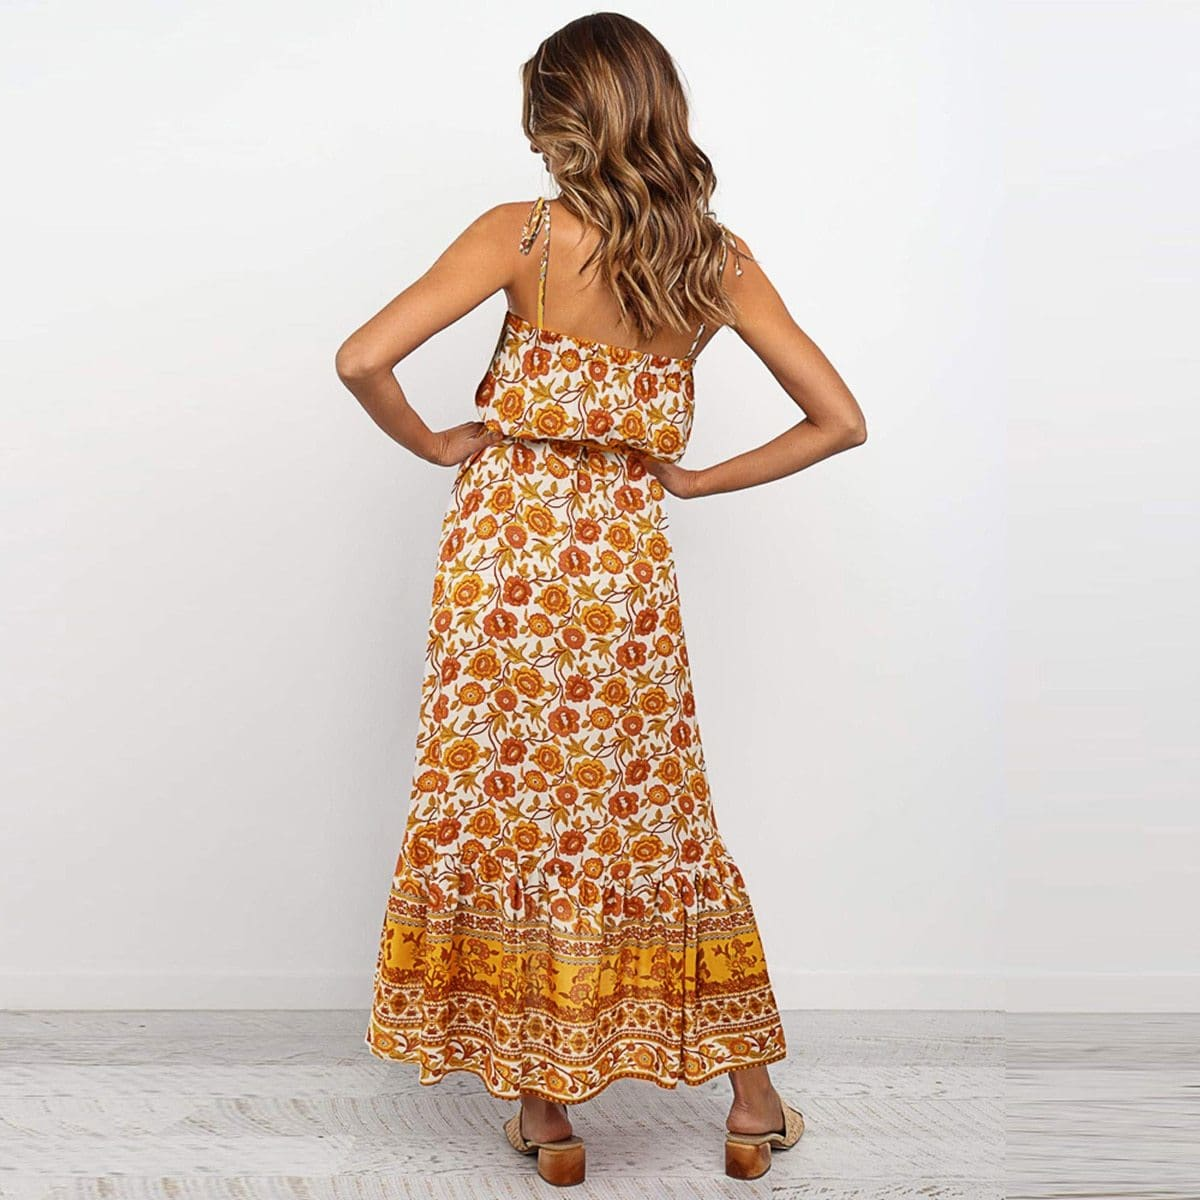 Buy Cheap Boho Floral Casual Long Maxi Dress Evening Party Cocktail Beach Holiday Sundress Online - Hplify